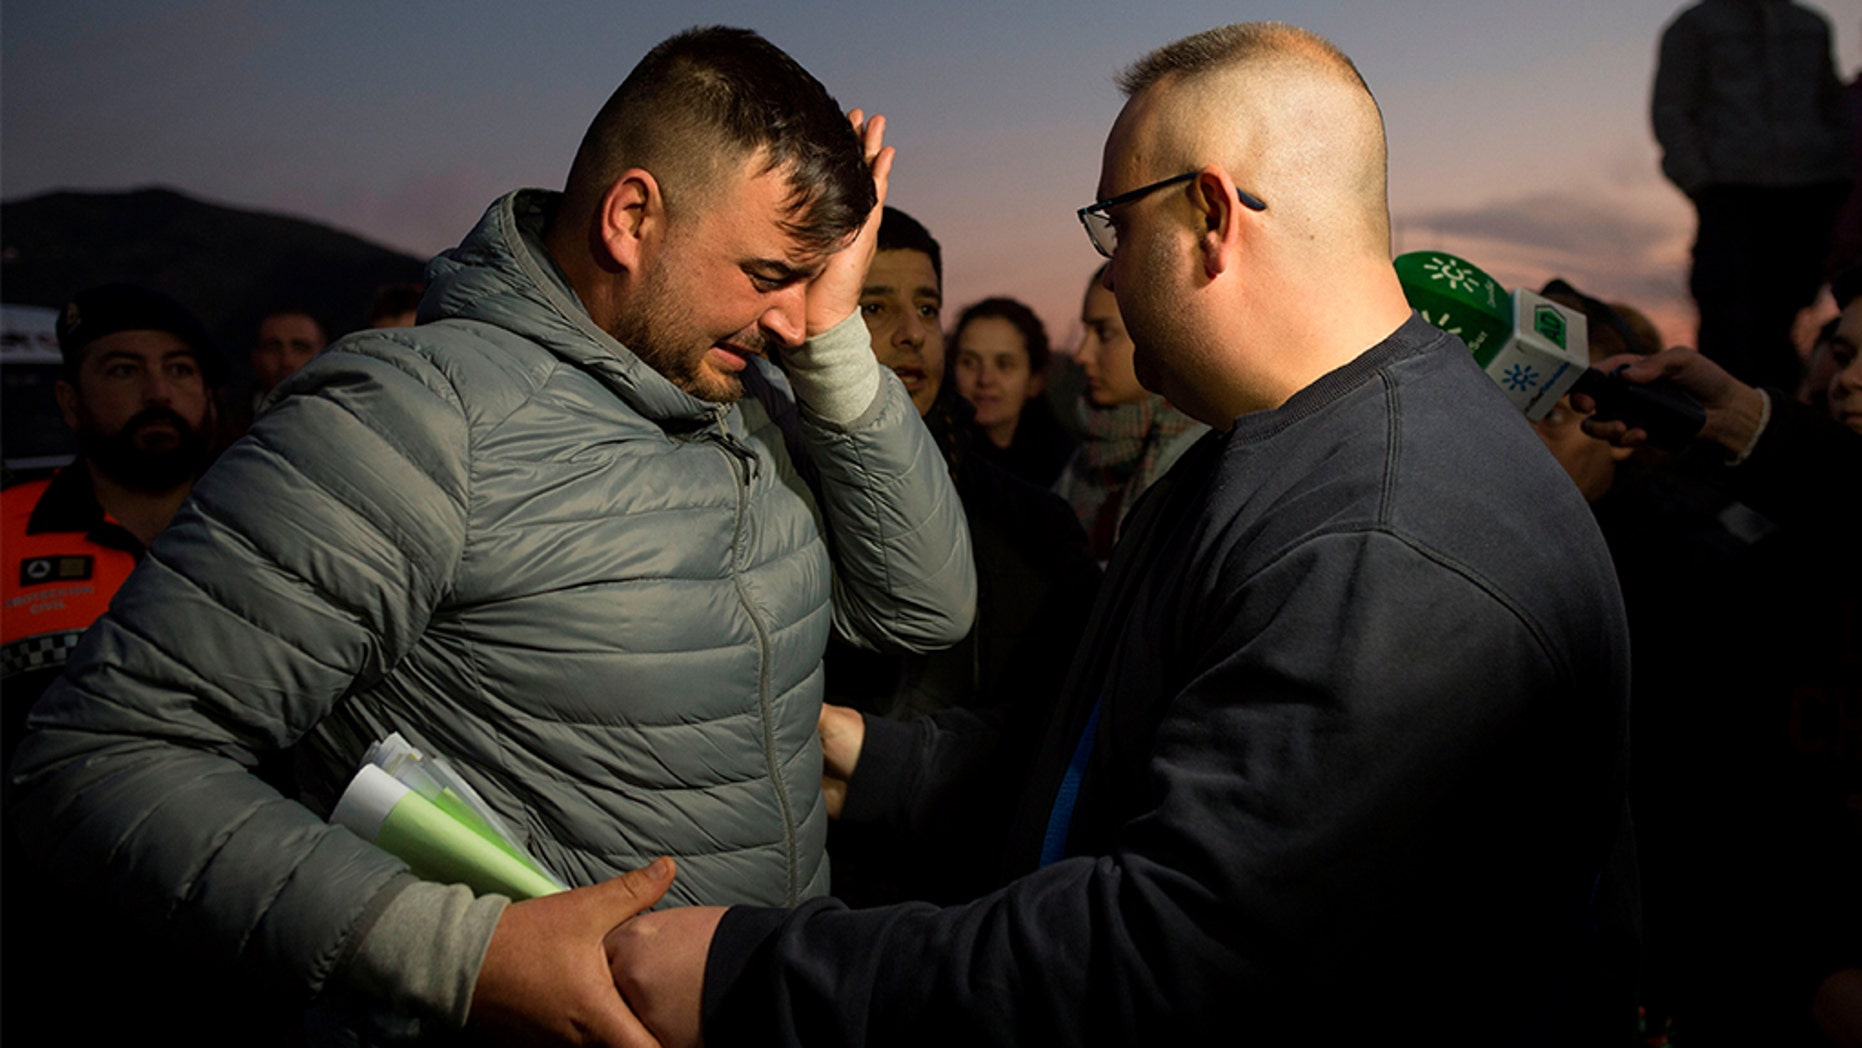 Jose Rosello (left), father of Julen who fell down a well, crying Wednesday as rescue efforts continue to find the boy in Totalan, southern Spain. (JORGE GUERRERO/AFP/Getty Images)